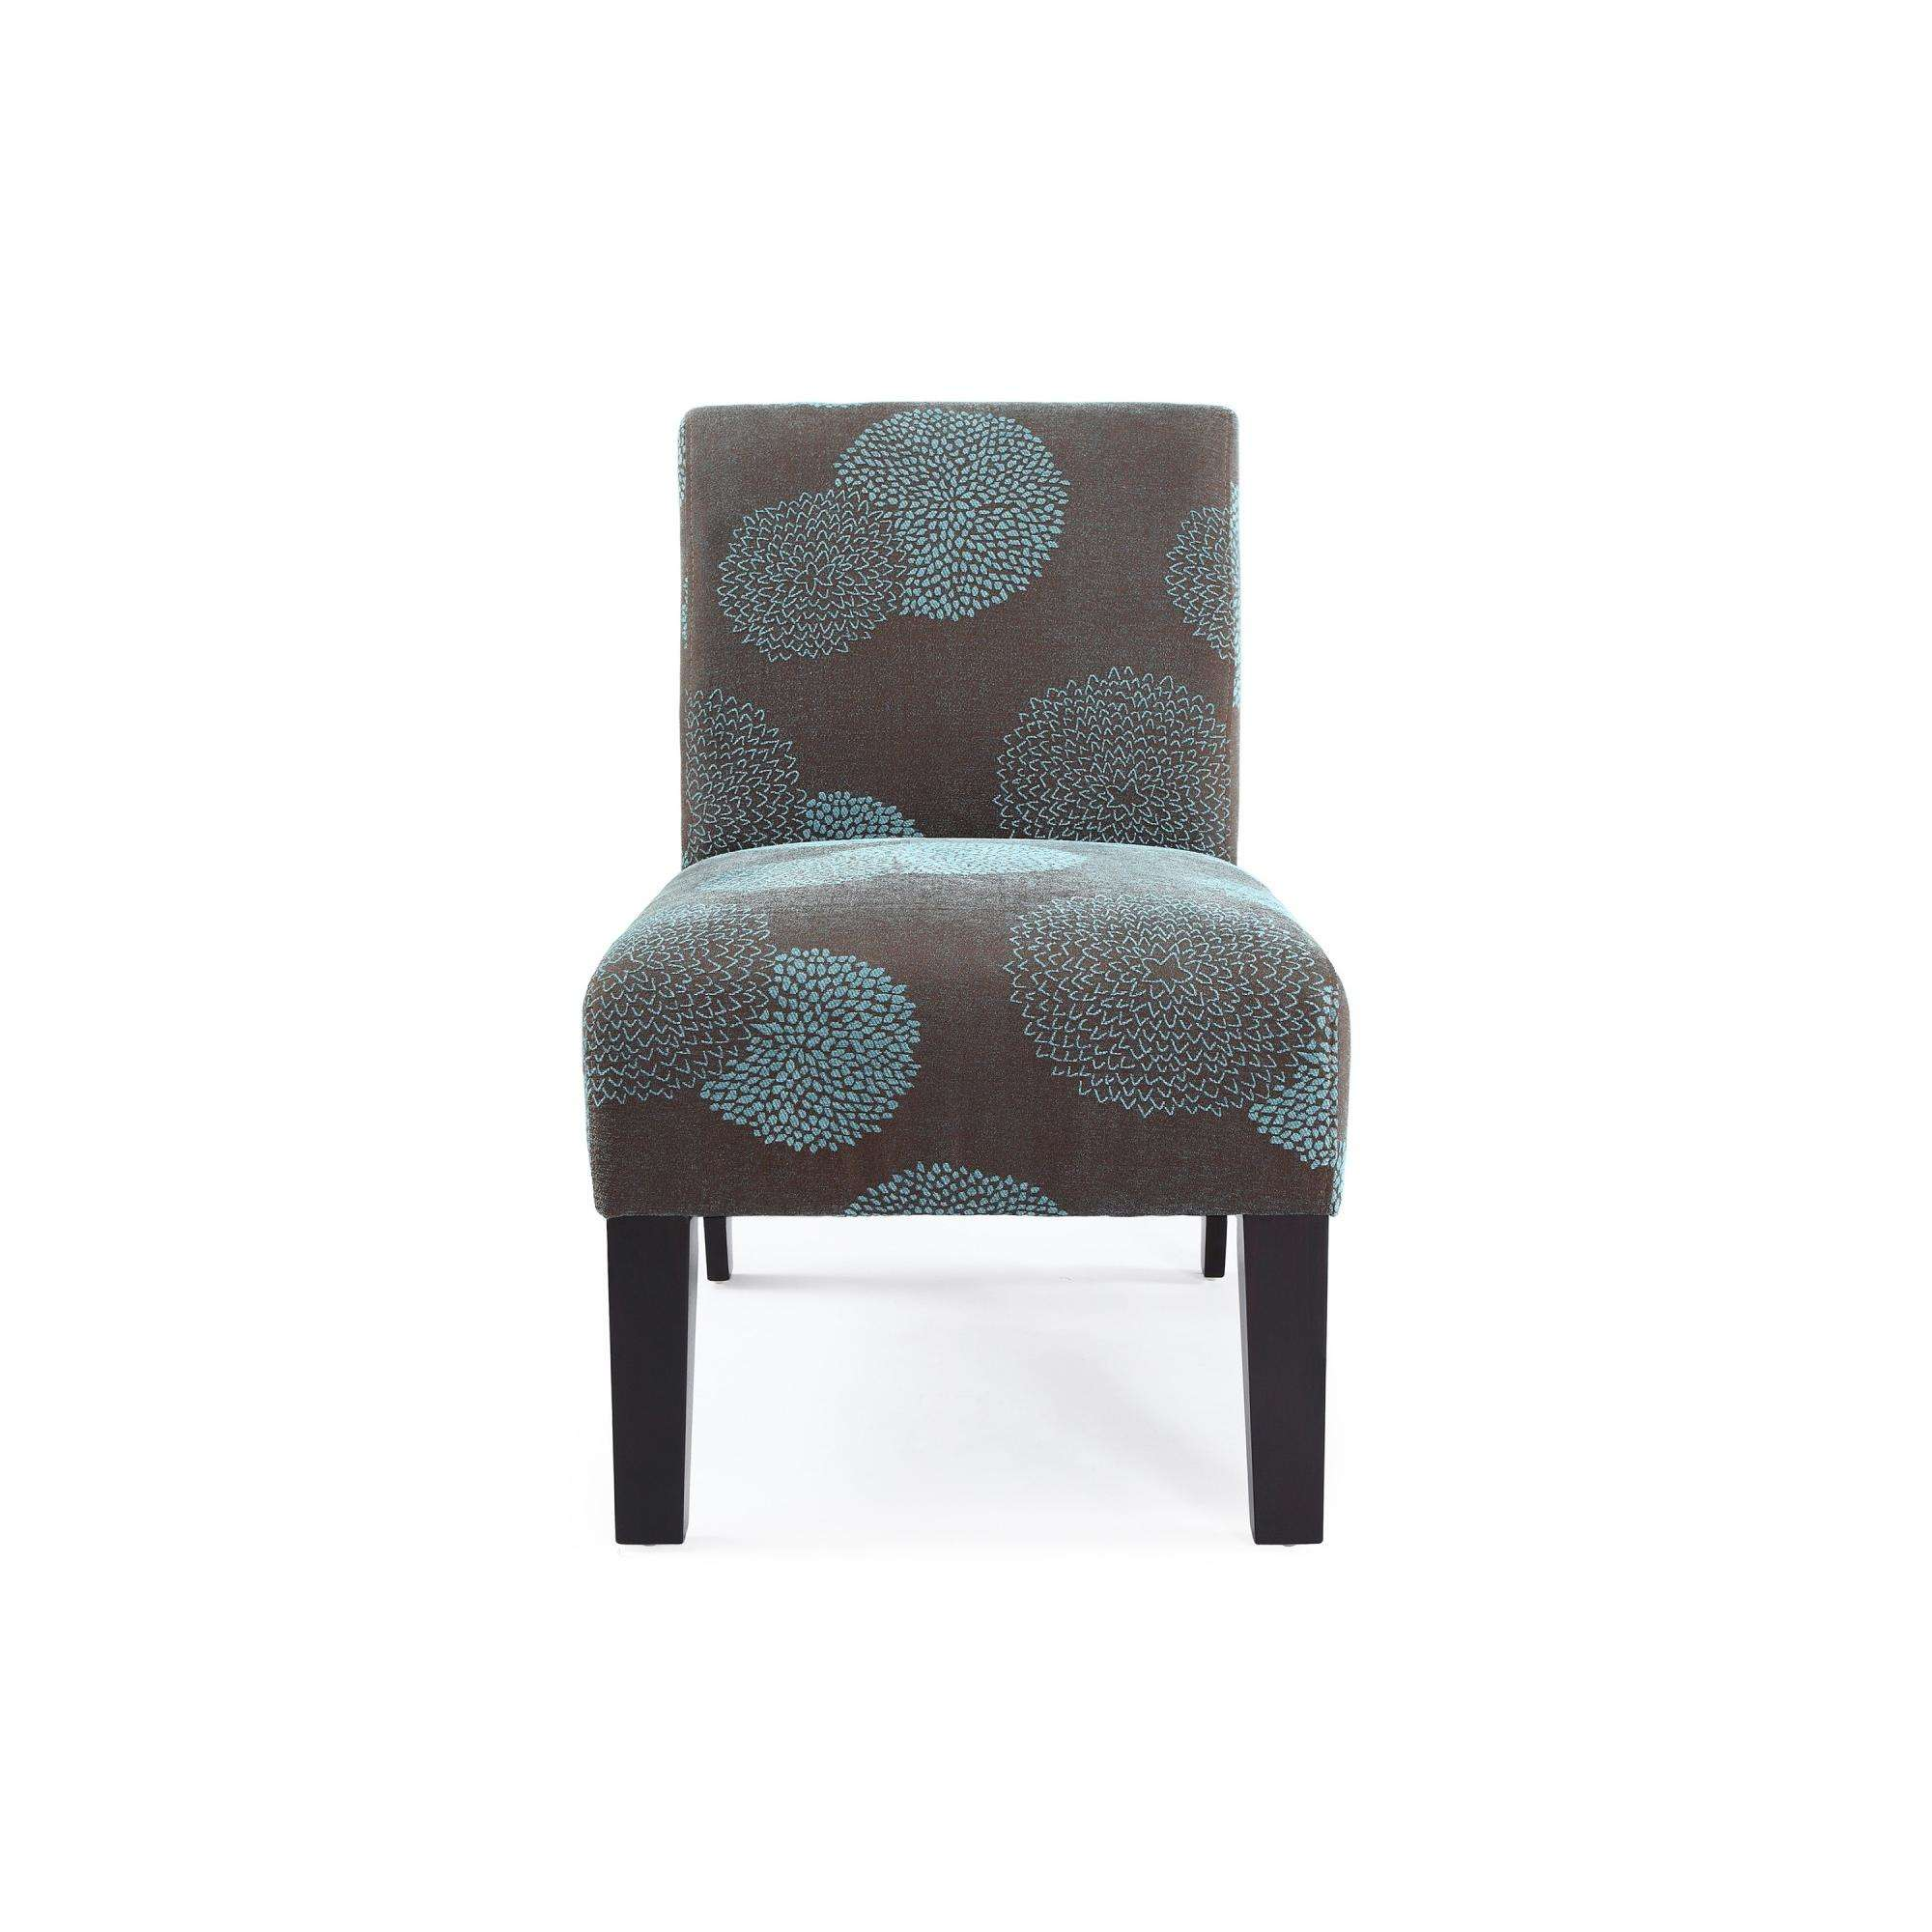 DHI Sunflower Deco Upholstered Accent Chair Multiple Colors - Walmart.com  sc 1 st  Walmart & DHI Sunflower Deco Upholstered Accent Chair Multiple Colors ...